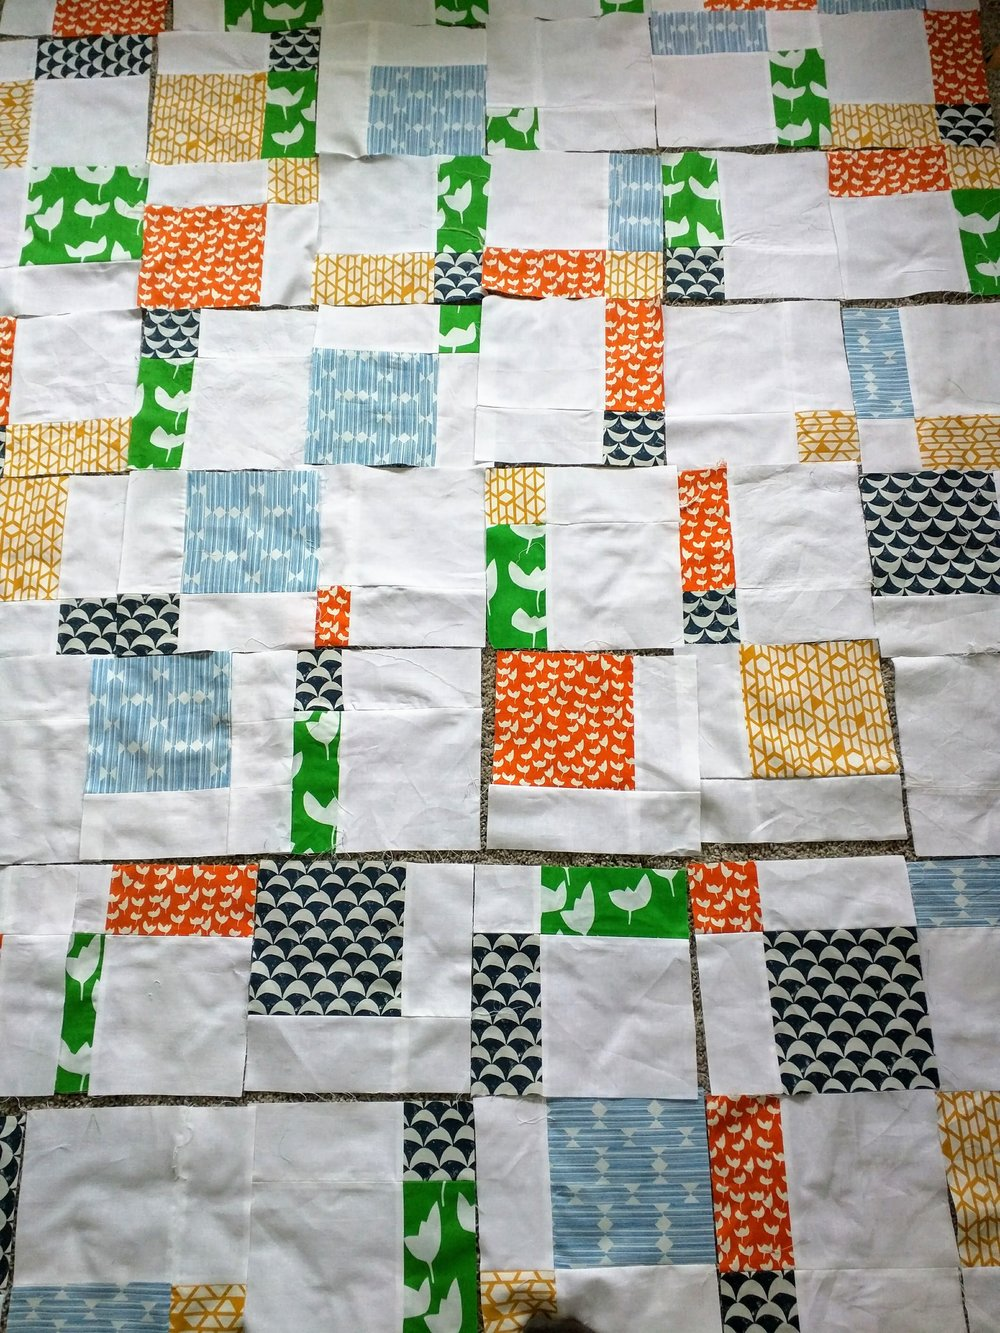 A wedding quilt in progress for our friends Anne and Andrew. This piece was made using the Disappearing Modern Nine Patch method. I love how it plays with negative space, balancing some truly bold patterns and saturated colours with lots of stark white.